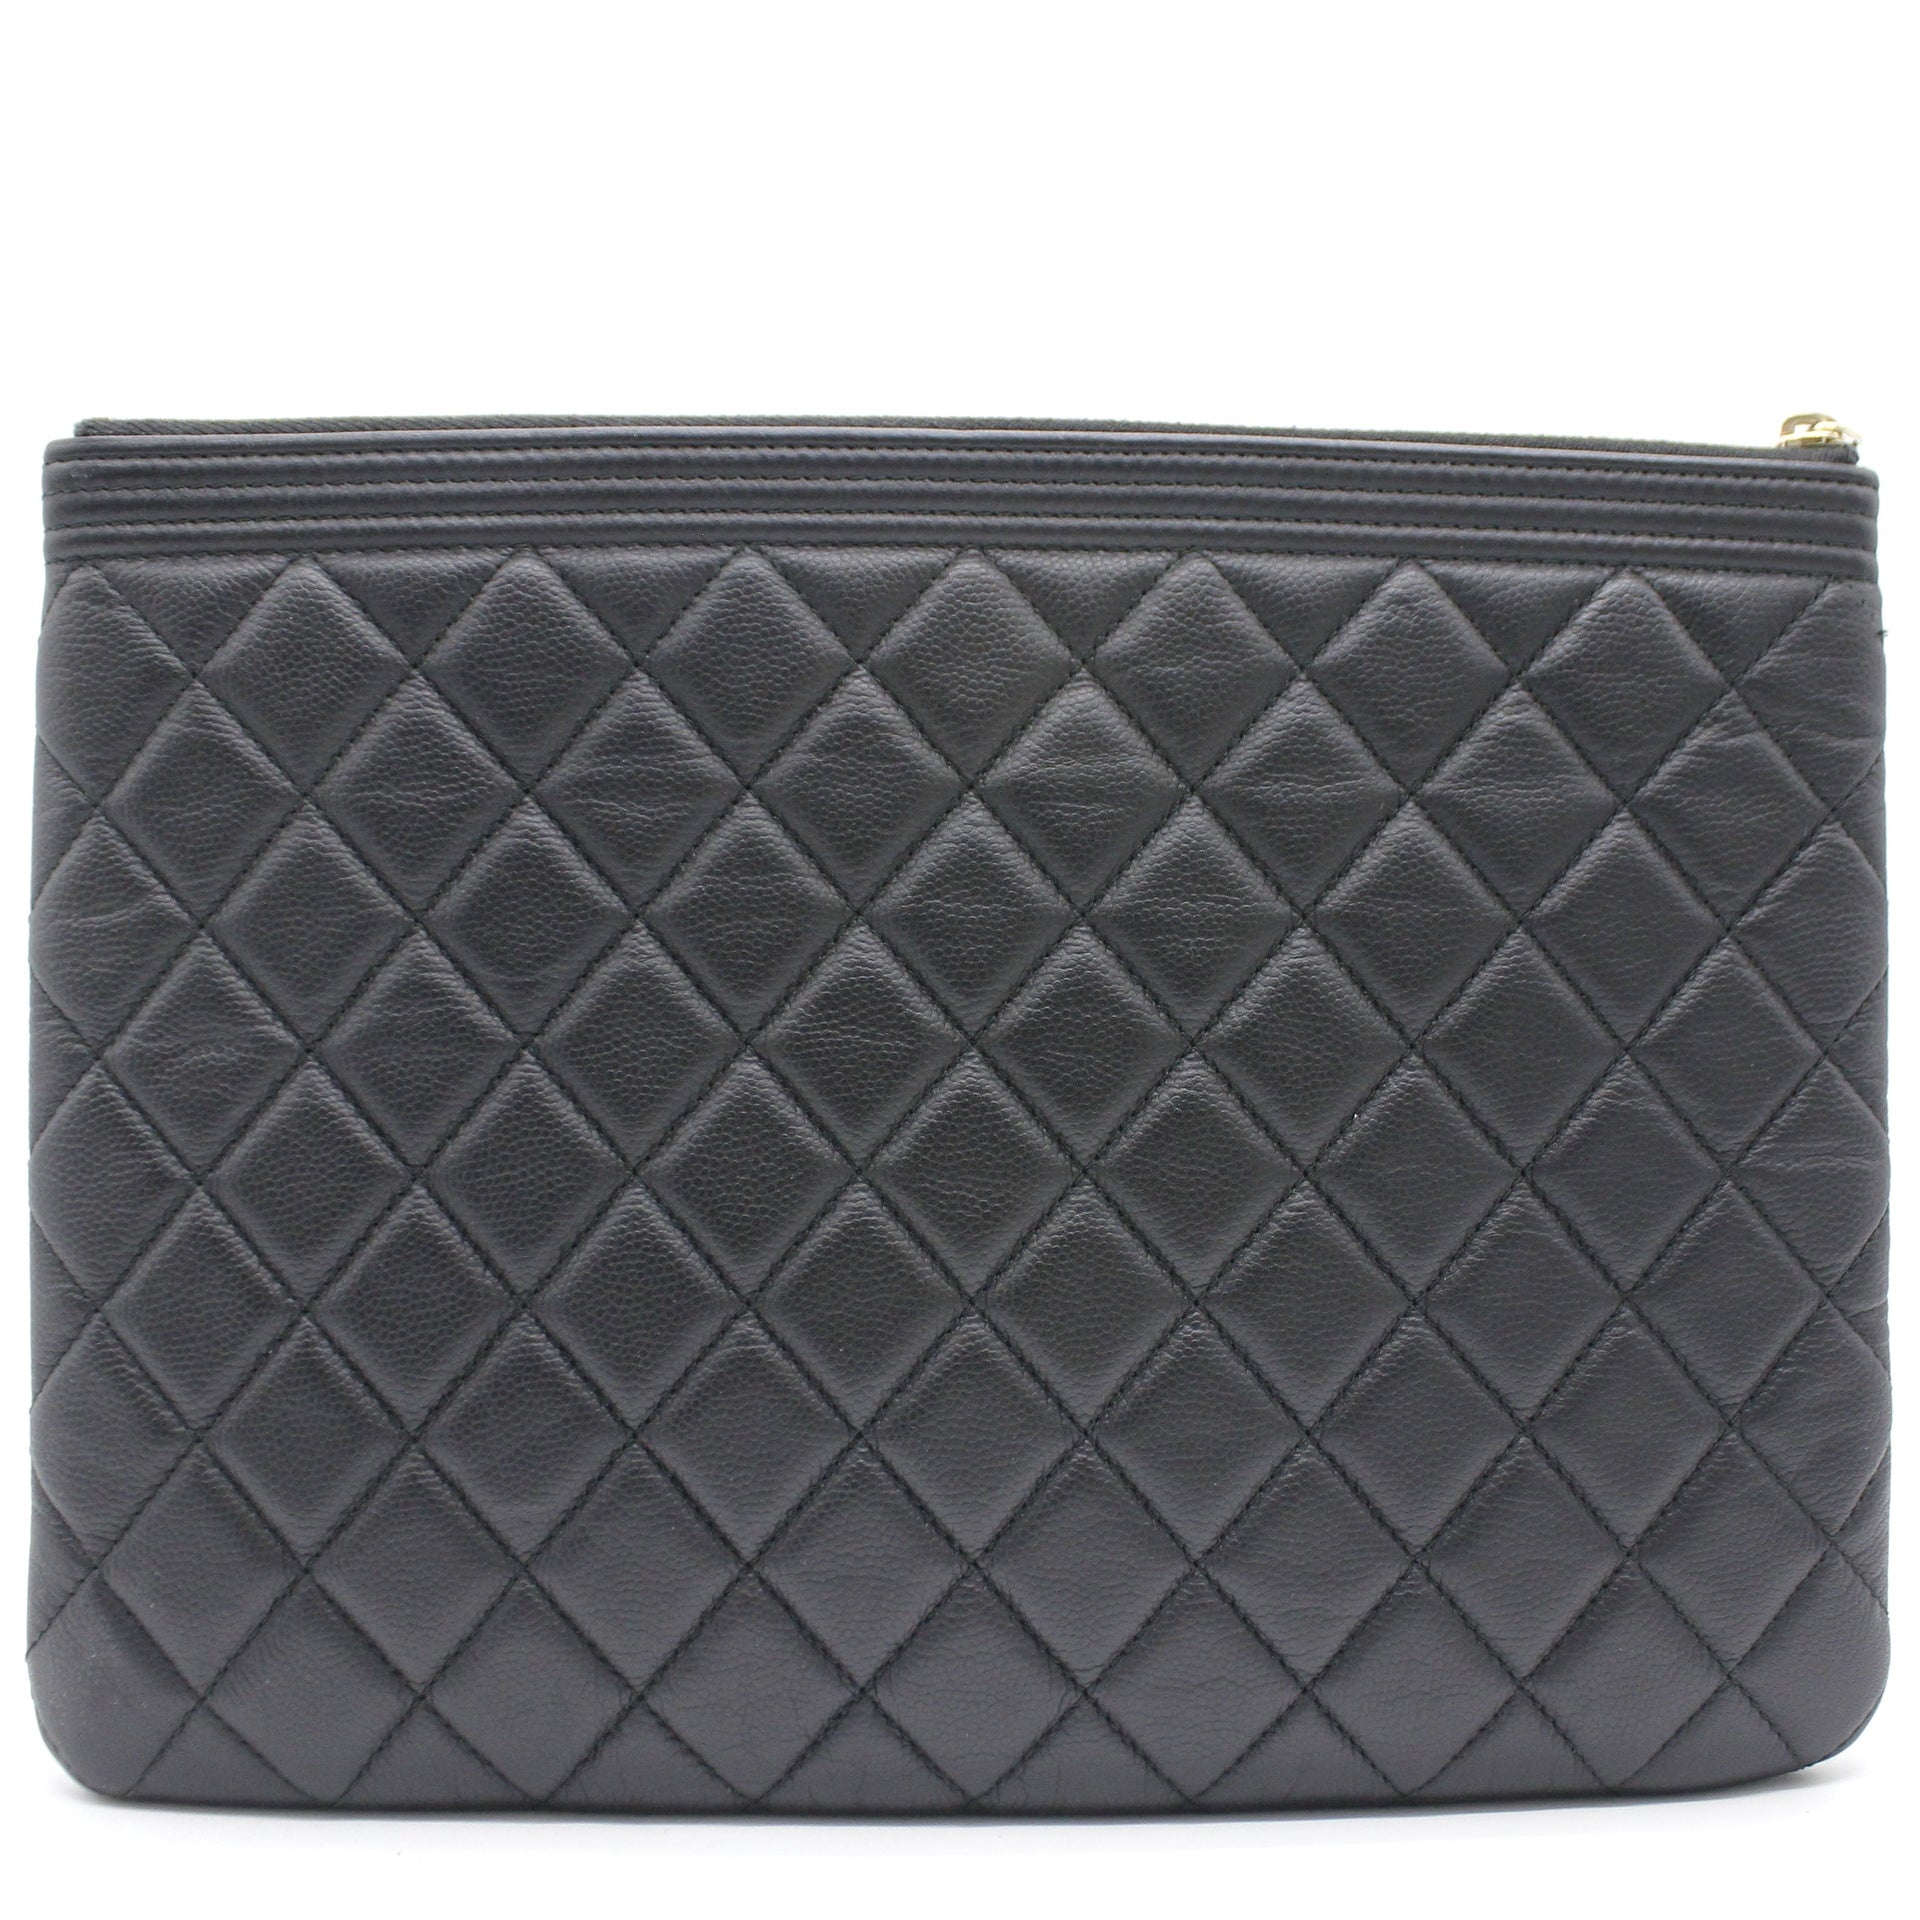 Caviar Quilted Boy O Case Clutch Pouch Bag